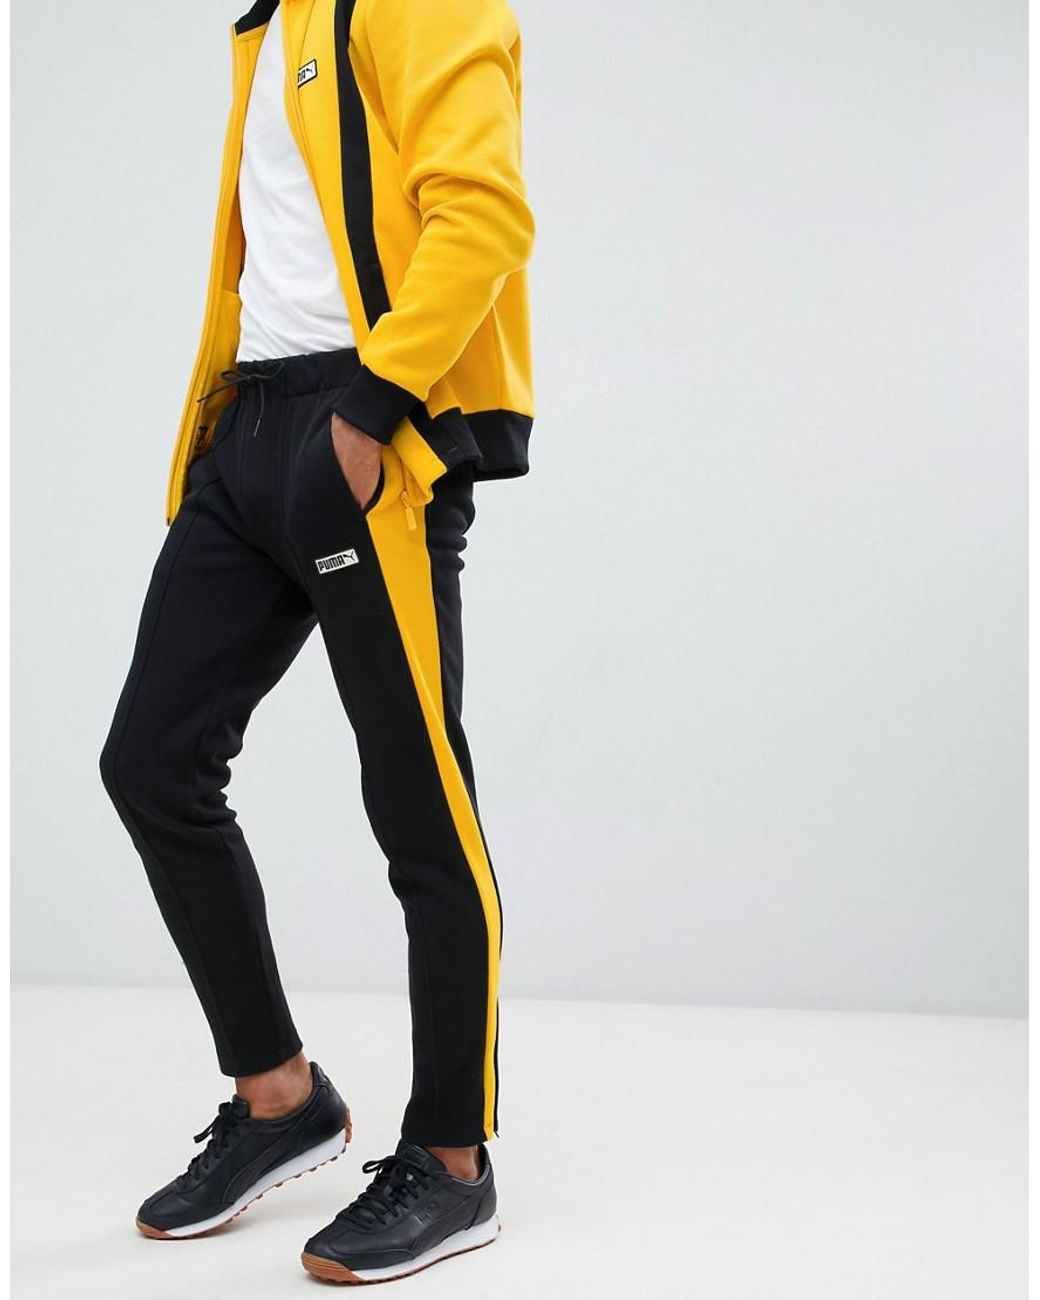 3909a8d7577d PUMA Spezial joggers In Yellow 57722201 in Yellow for Men - Lyst